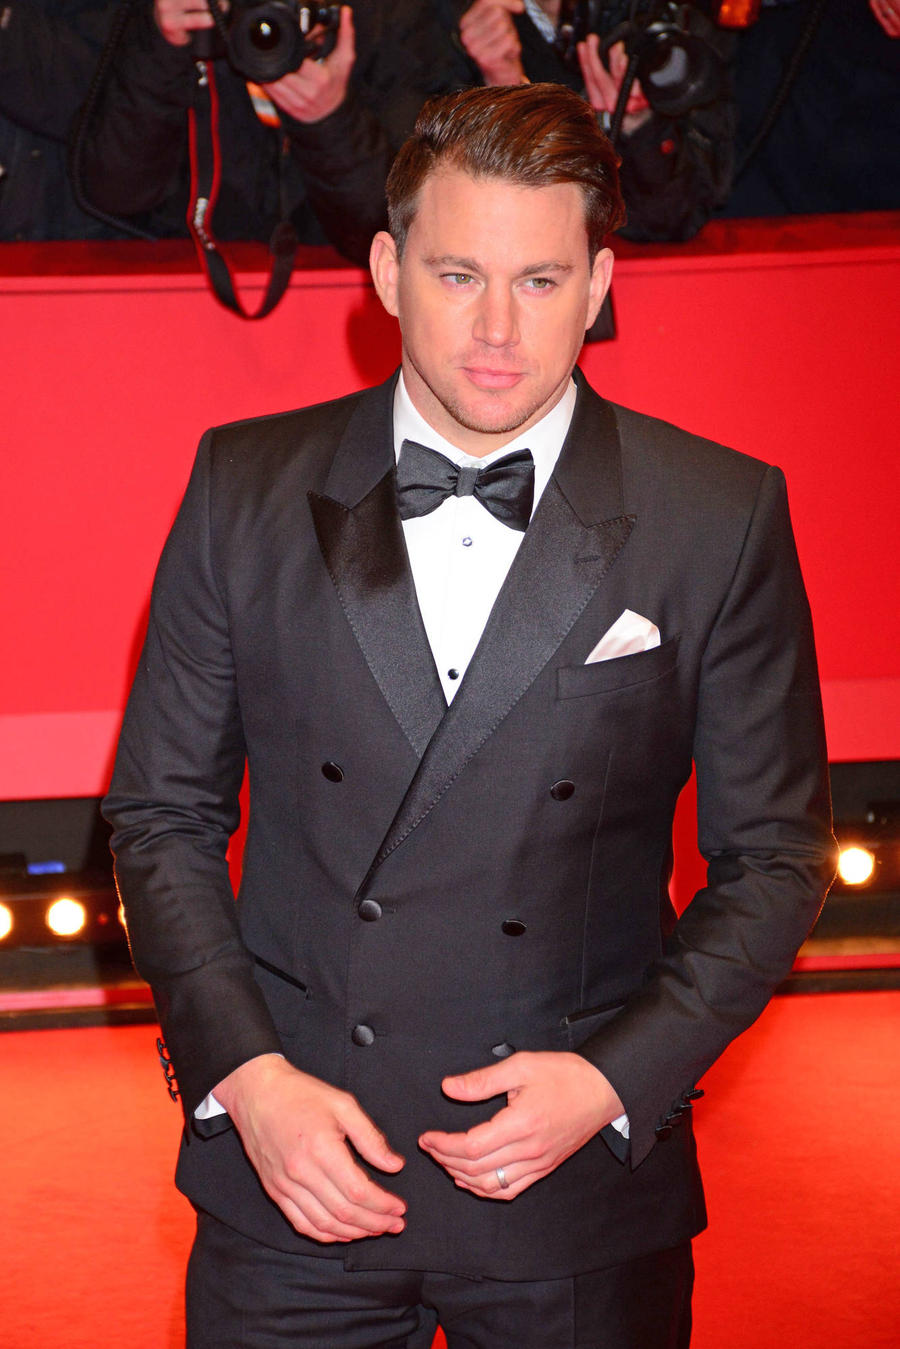 Channing Tatum | Channing Tatum Invested In Miracle Tea ... Channing Tatum